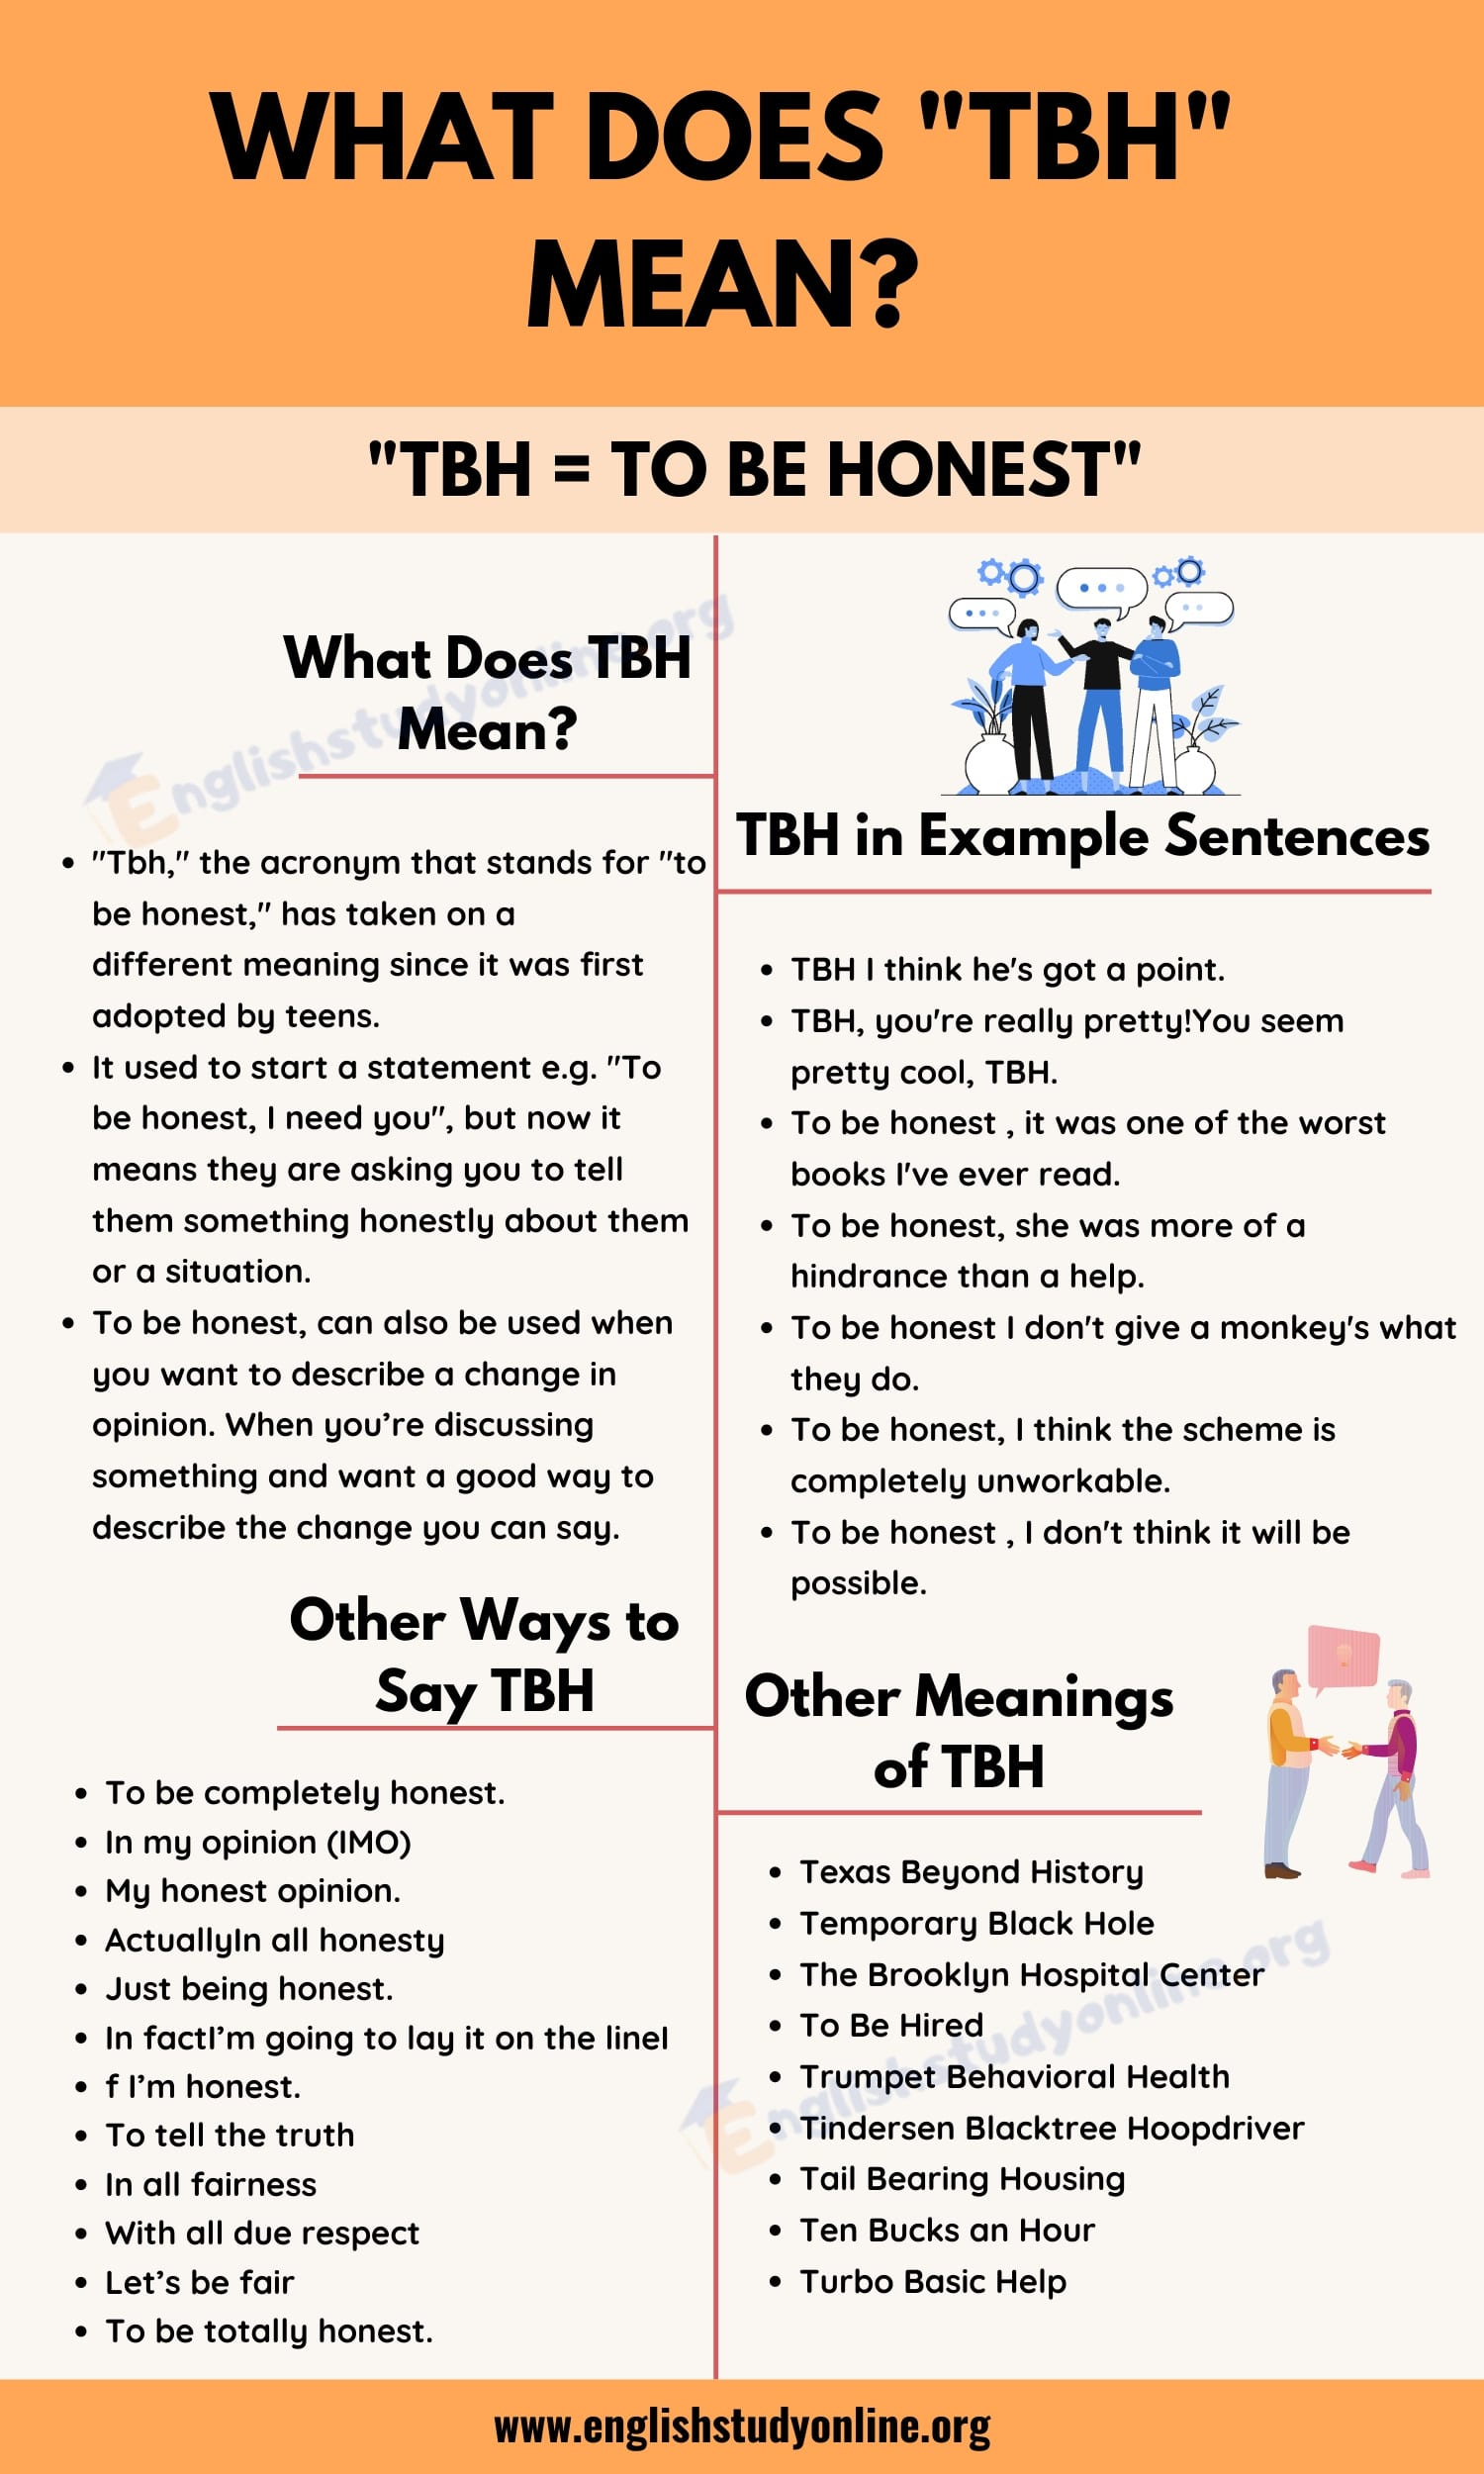 Tbh Meaning What Does This Popular Abbreviation Mean In Online Texting English Study Online